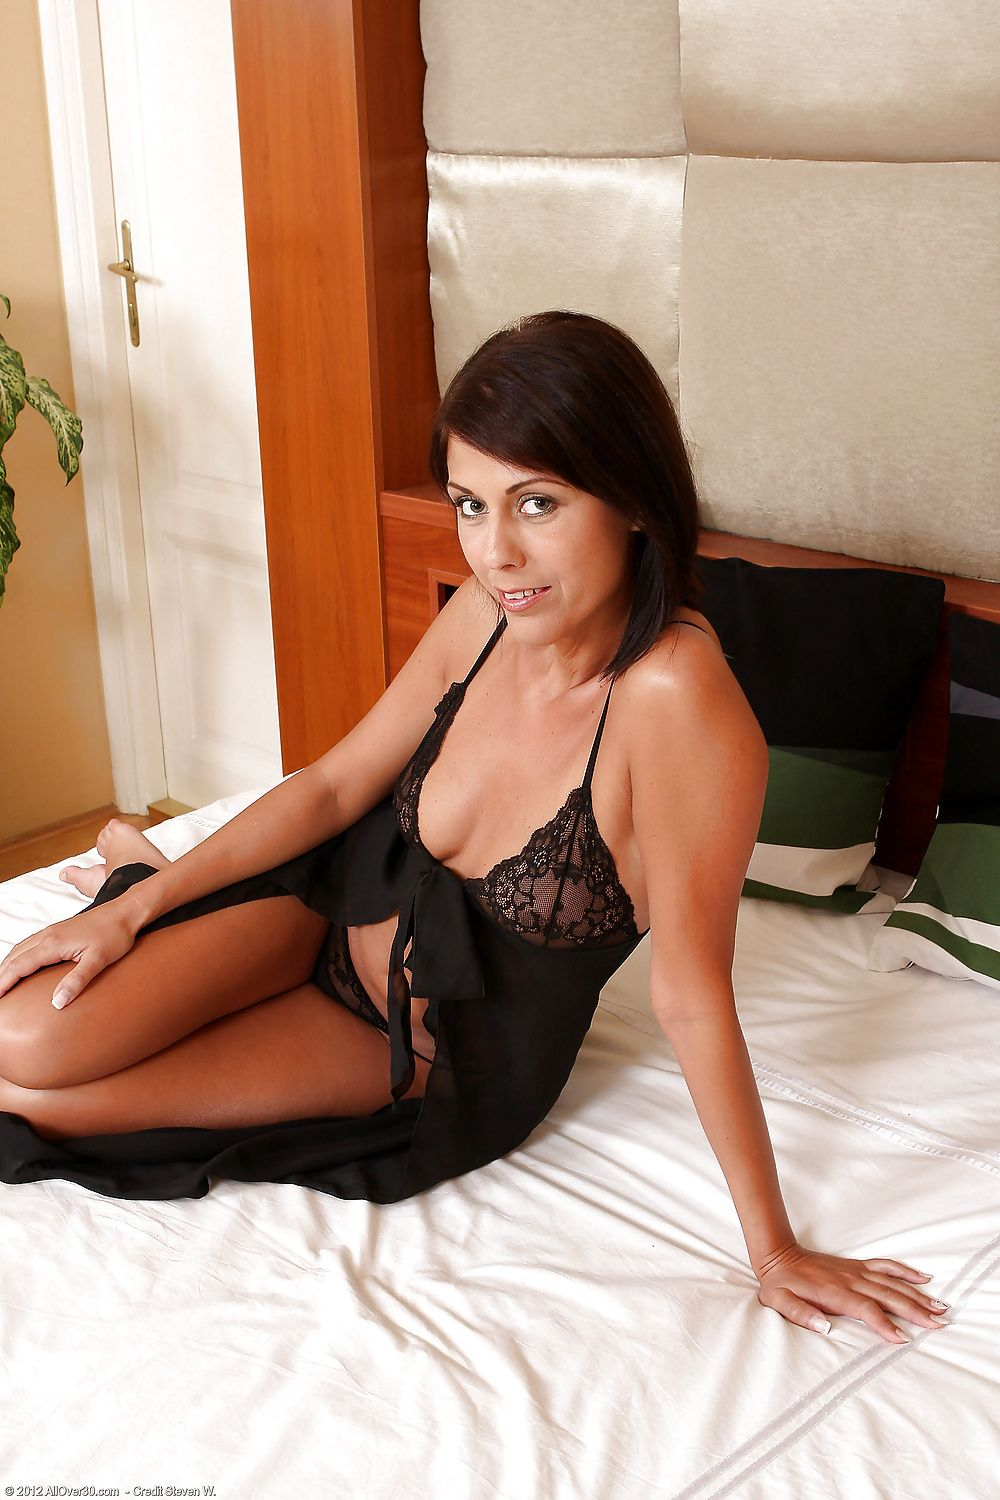 beautiful MILF from xHamster | xHamster MILFs